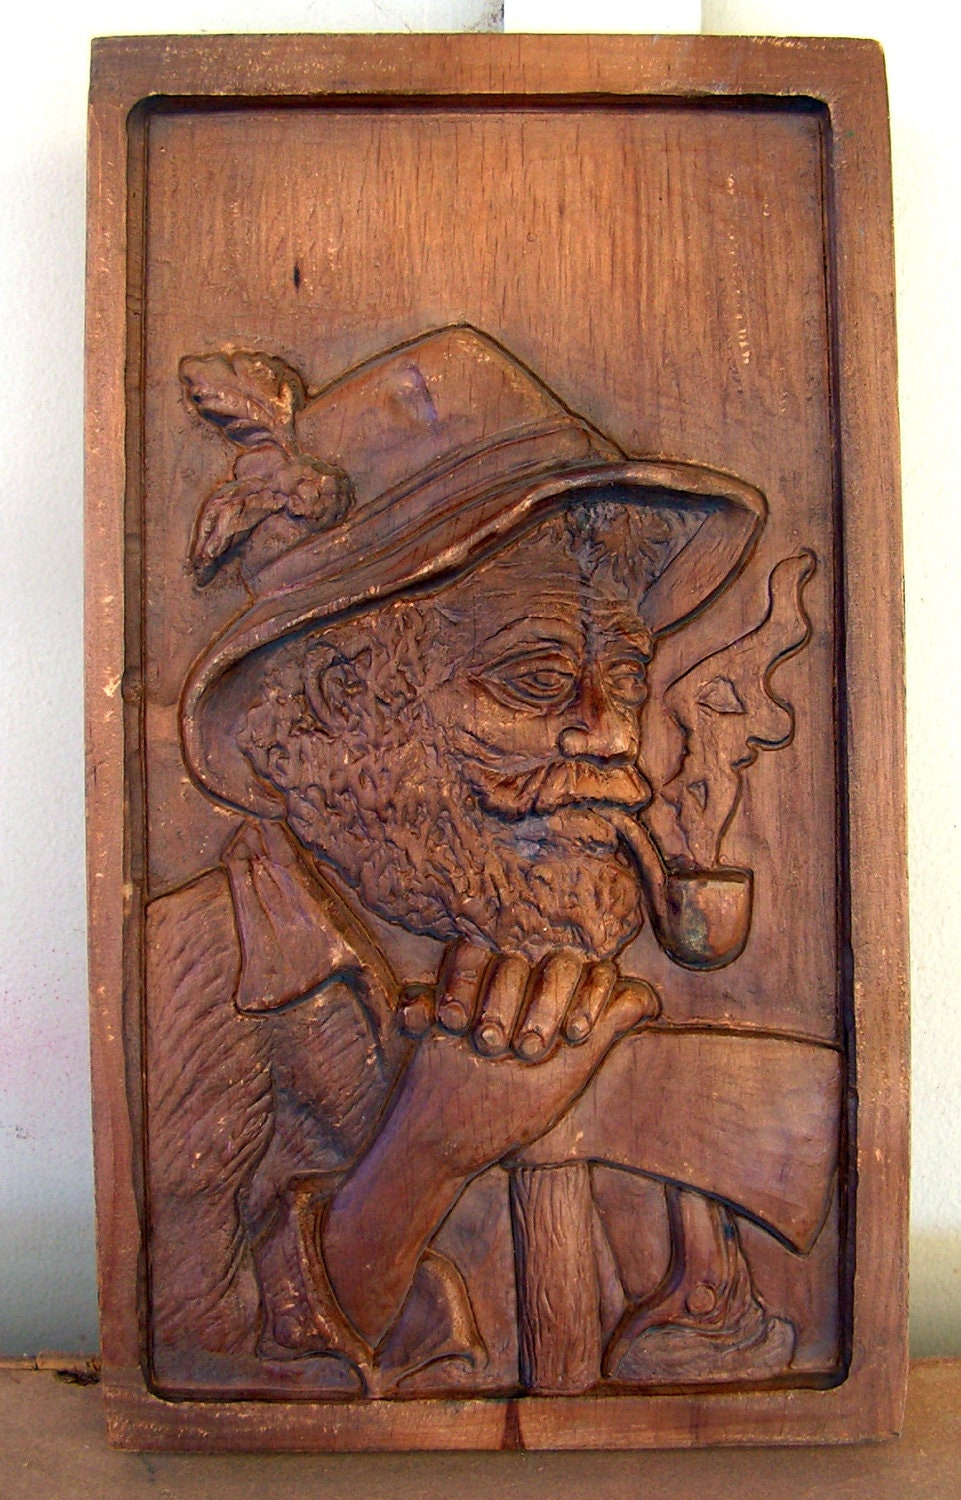 Vintage German Art Wood Carving Relief Wall Plaque Hanging